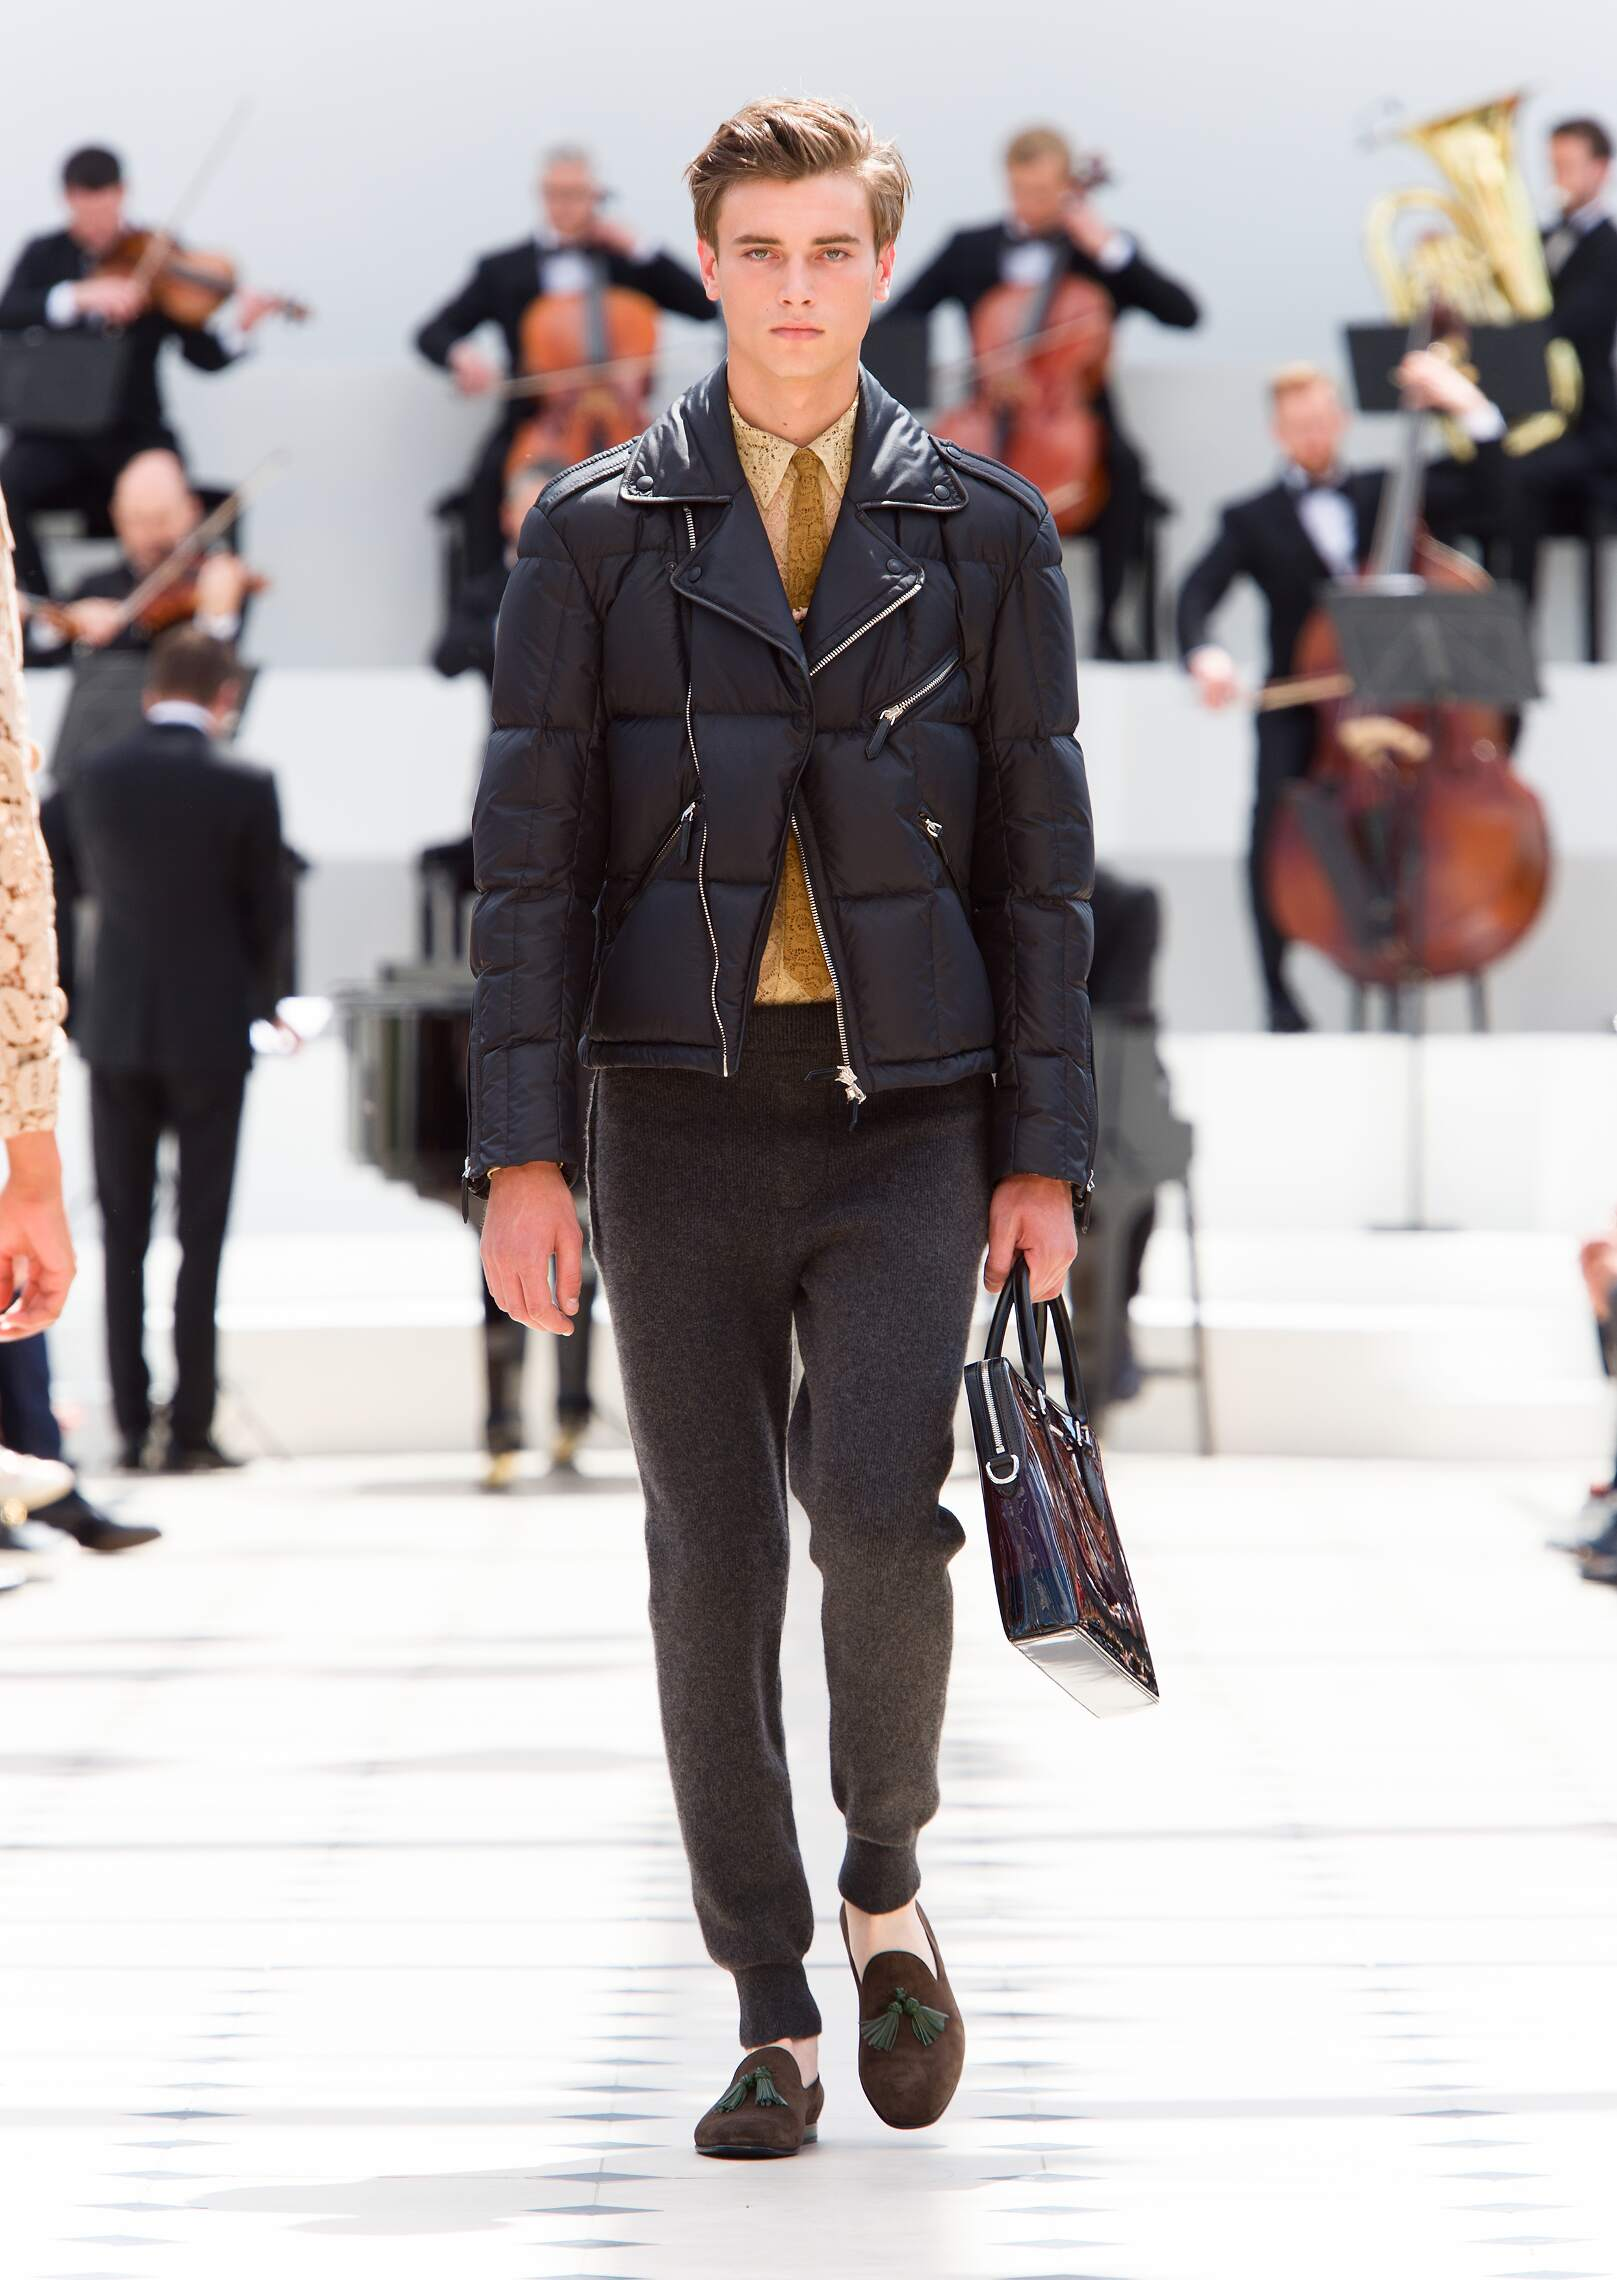 2016 Fashion Man Model Burberry Prorsum Collection Catwalk